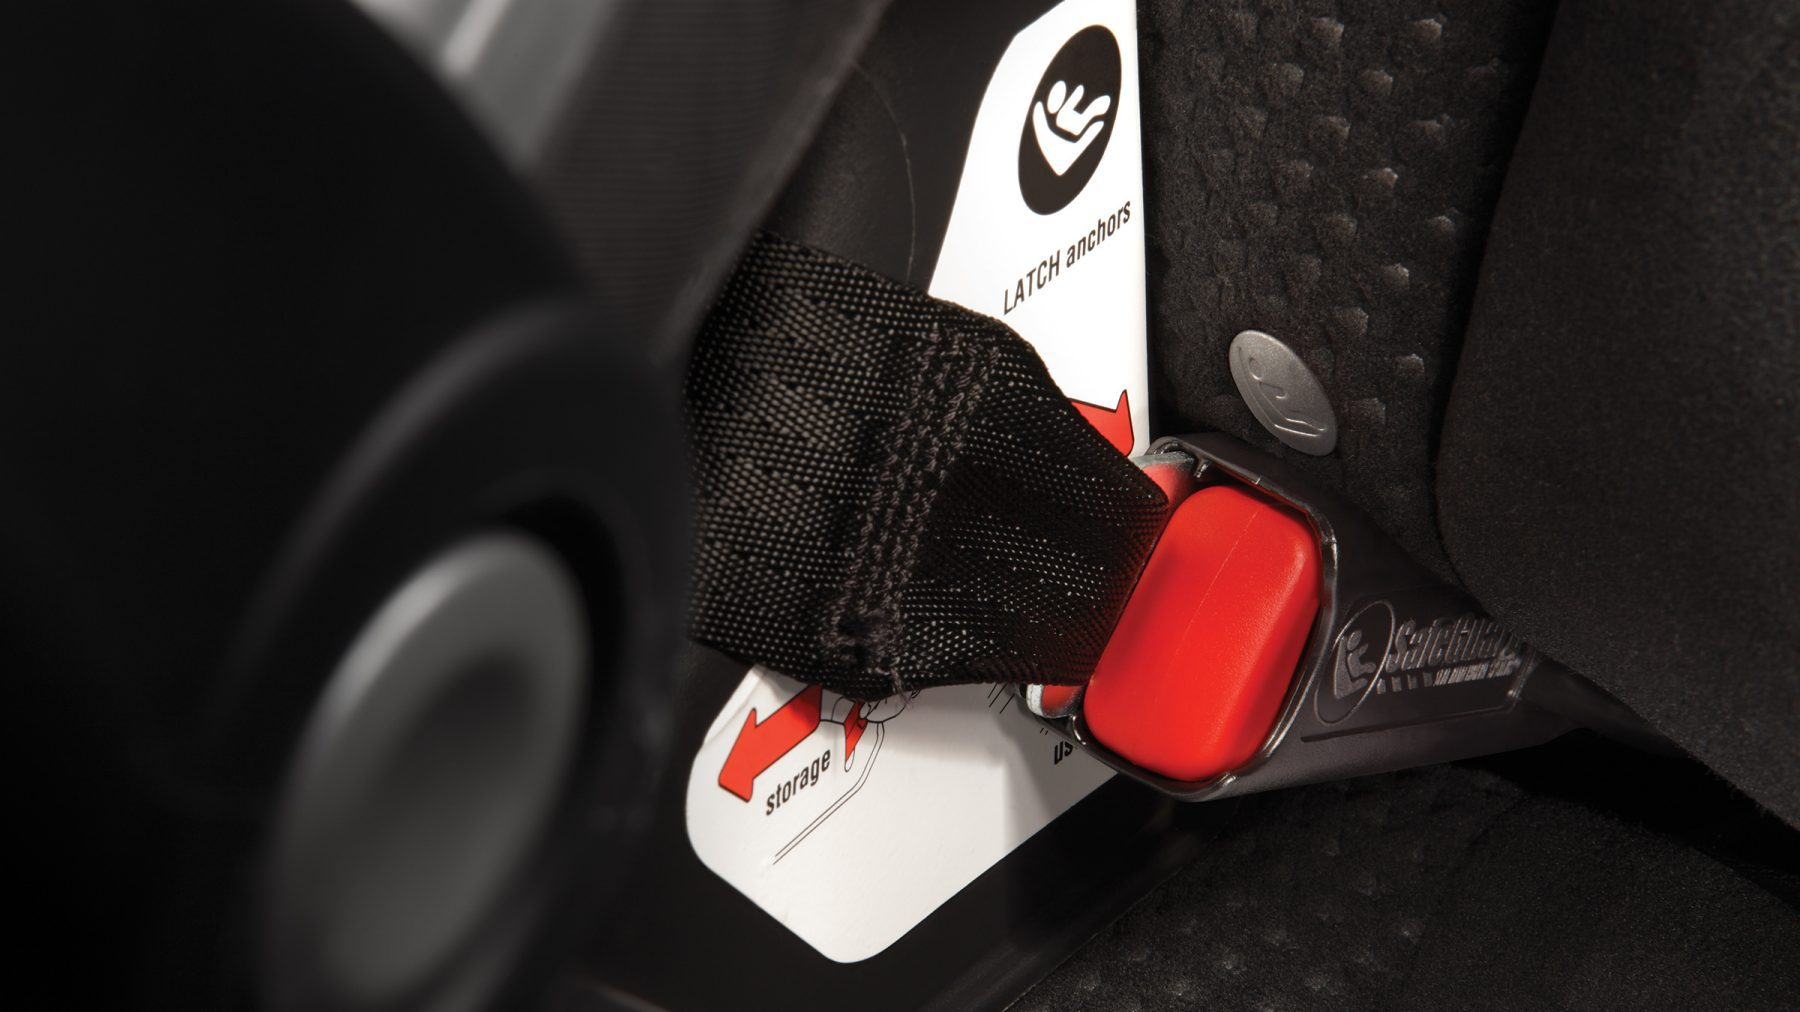 ISOFIX child safety seat system